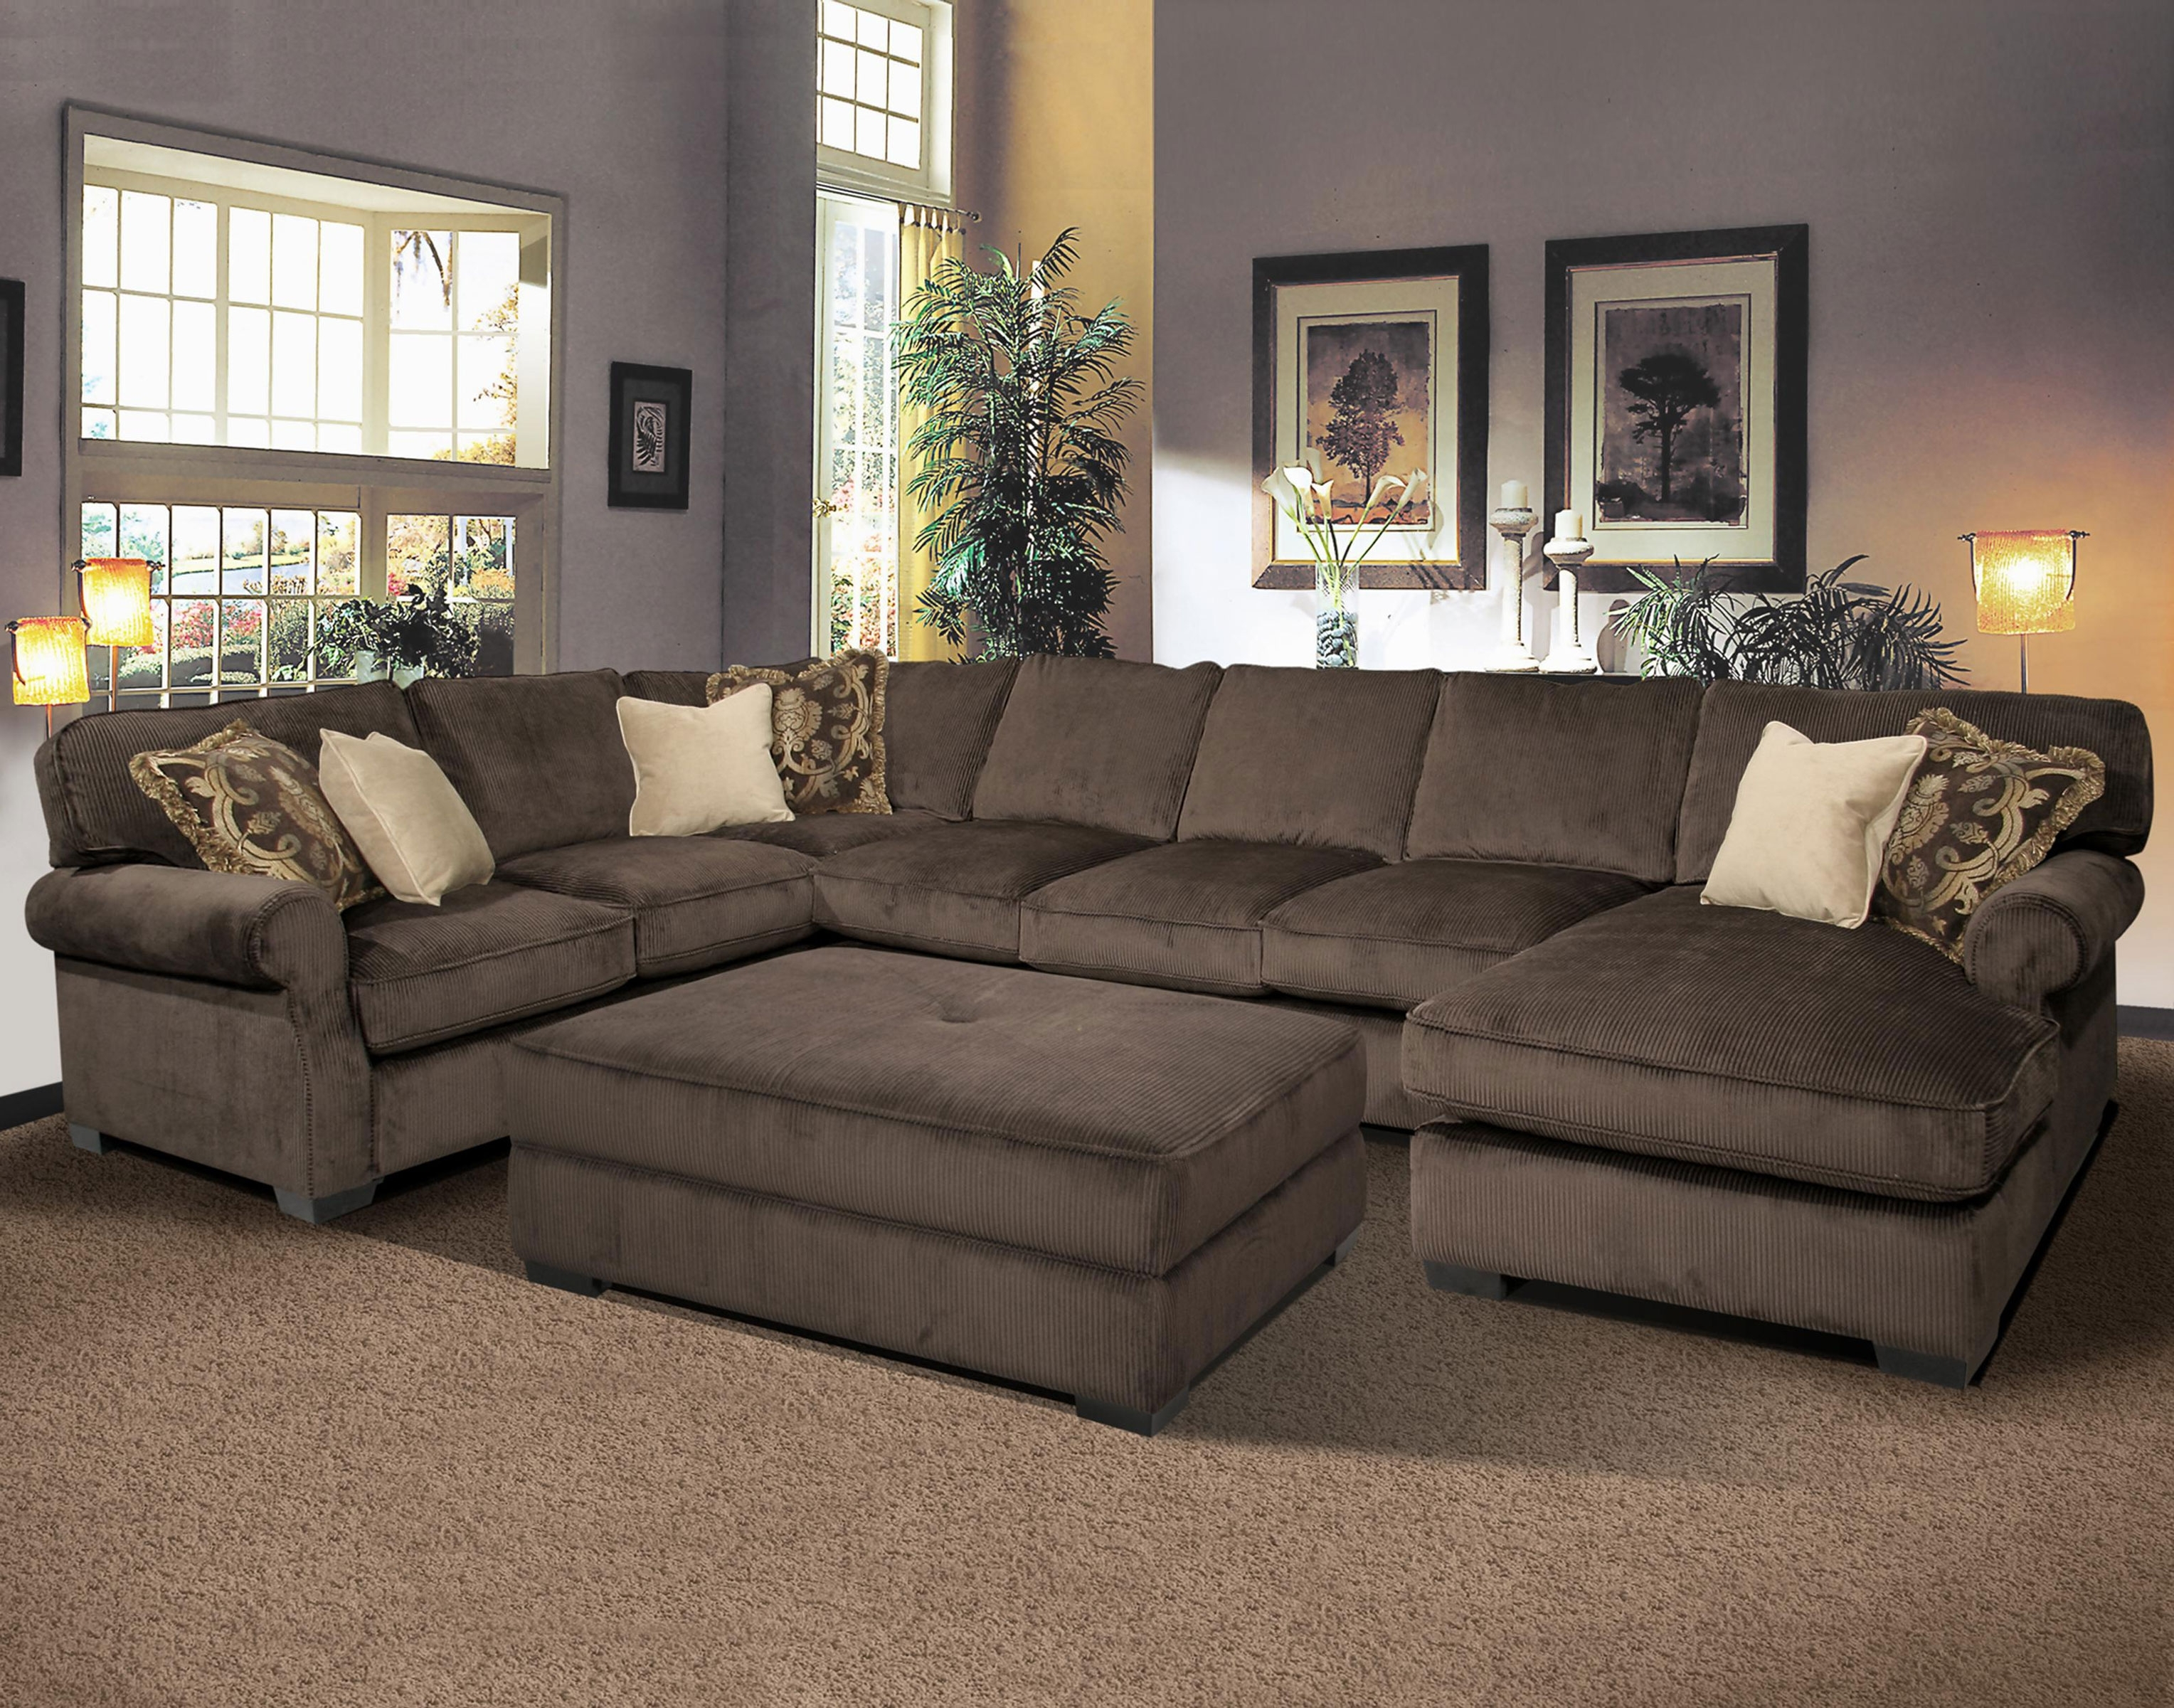 Sectional Sofa: Sectional Sofas Tulsa Sofas Tulsa Ok, Sectional In Latest Ivan Smith Sectional Sofas (View 17 of 20)